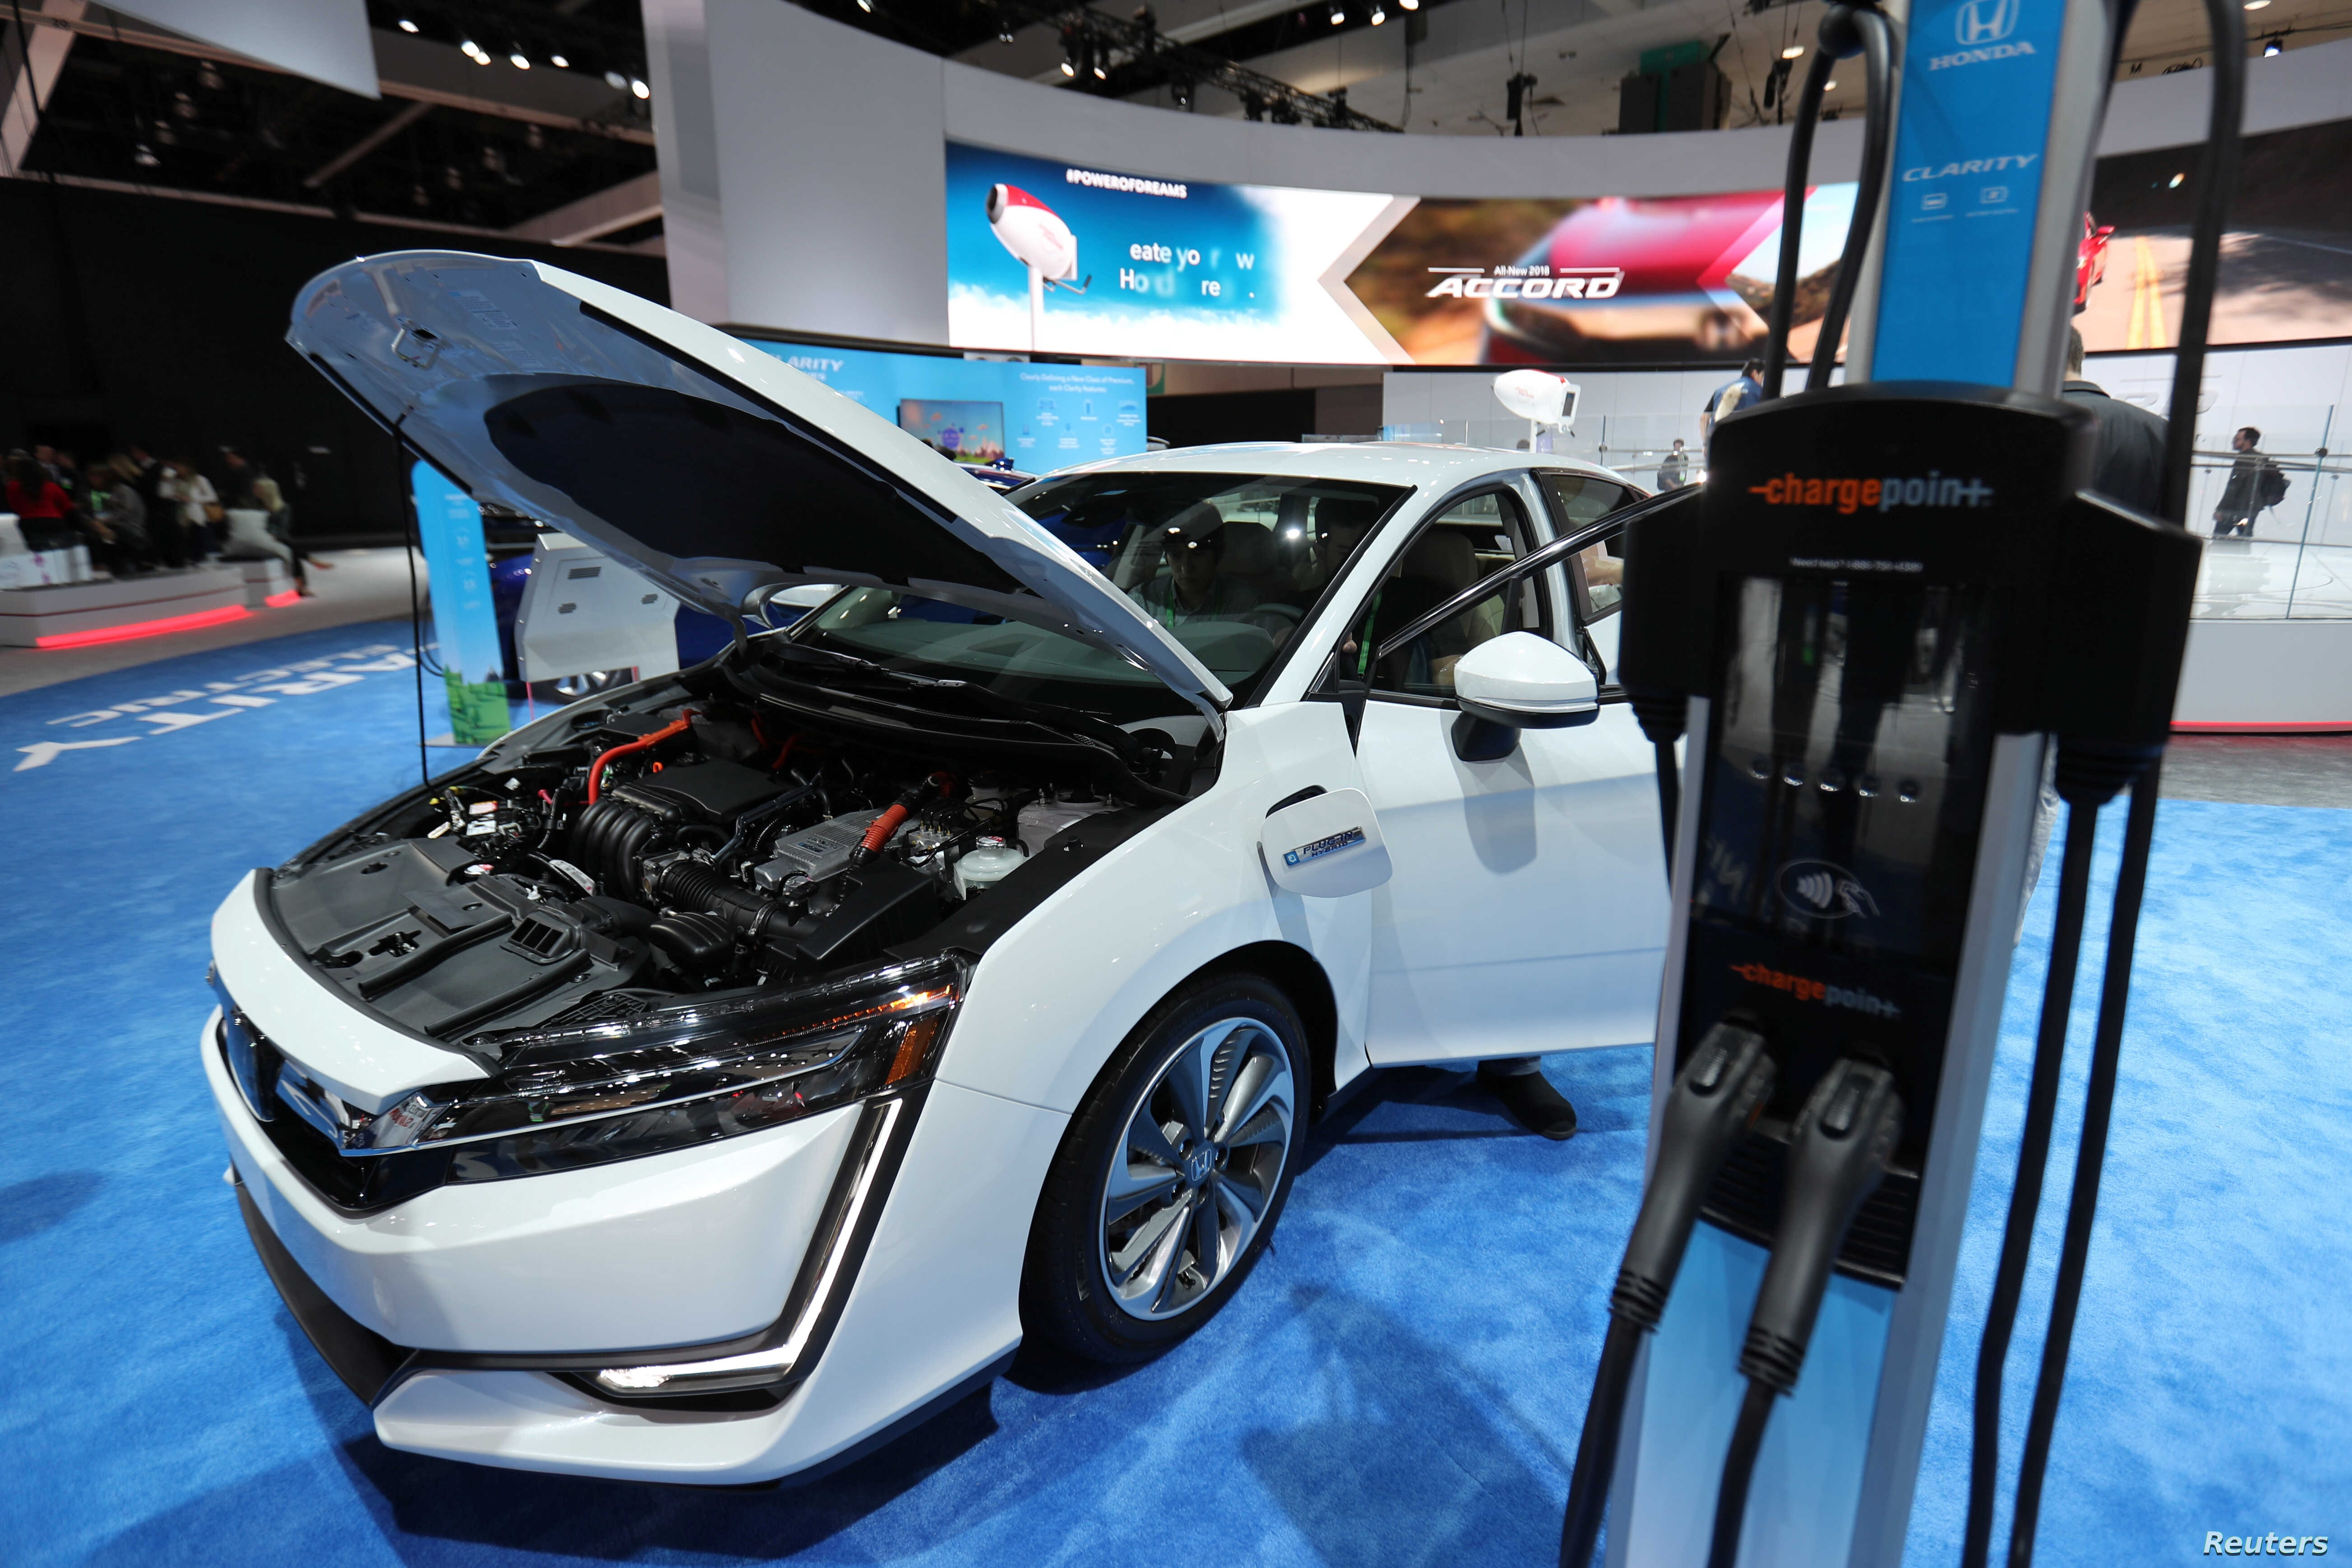 Honda To Cease Diesel Vehicle Sales In Europe By 2021 Voice Of America English